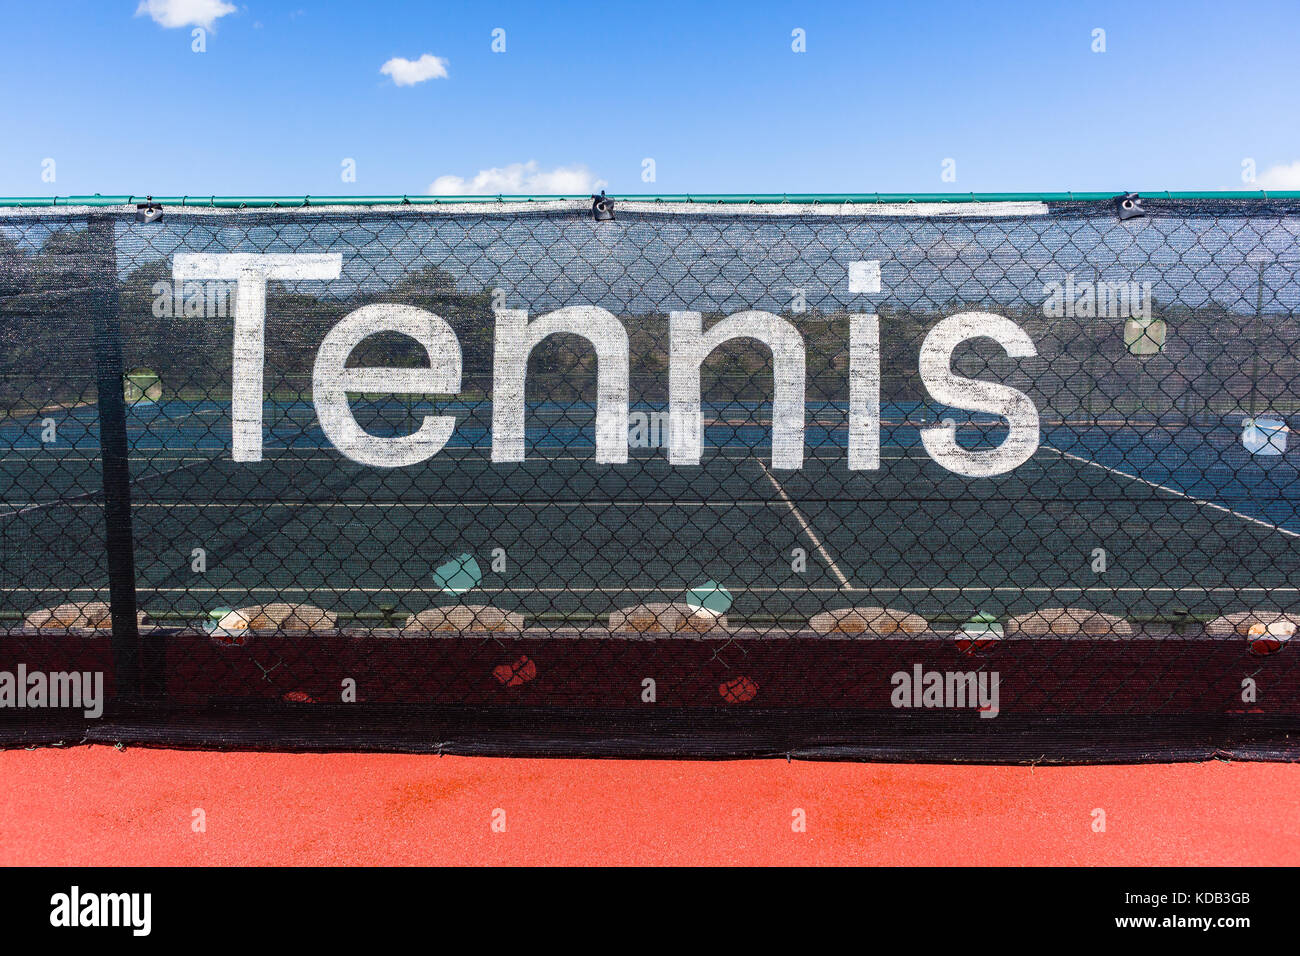 Tennis word sign on courts side screens outdoors closeup abstract photo. - Stock Image